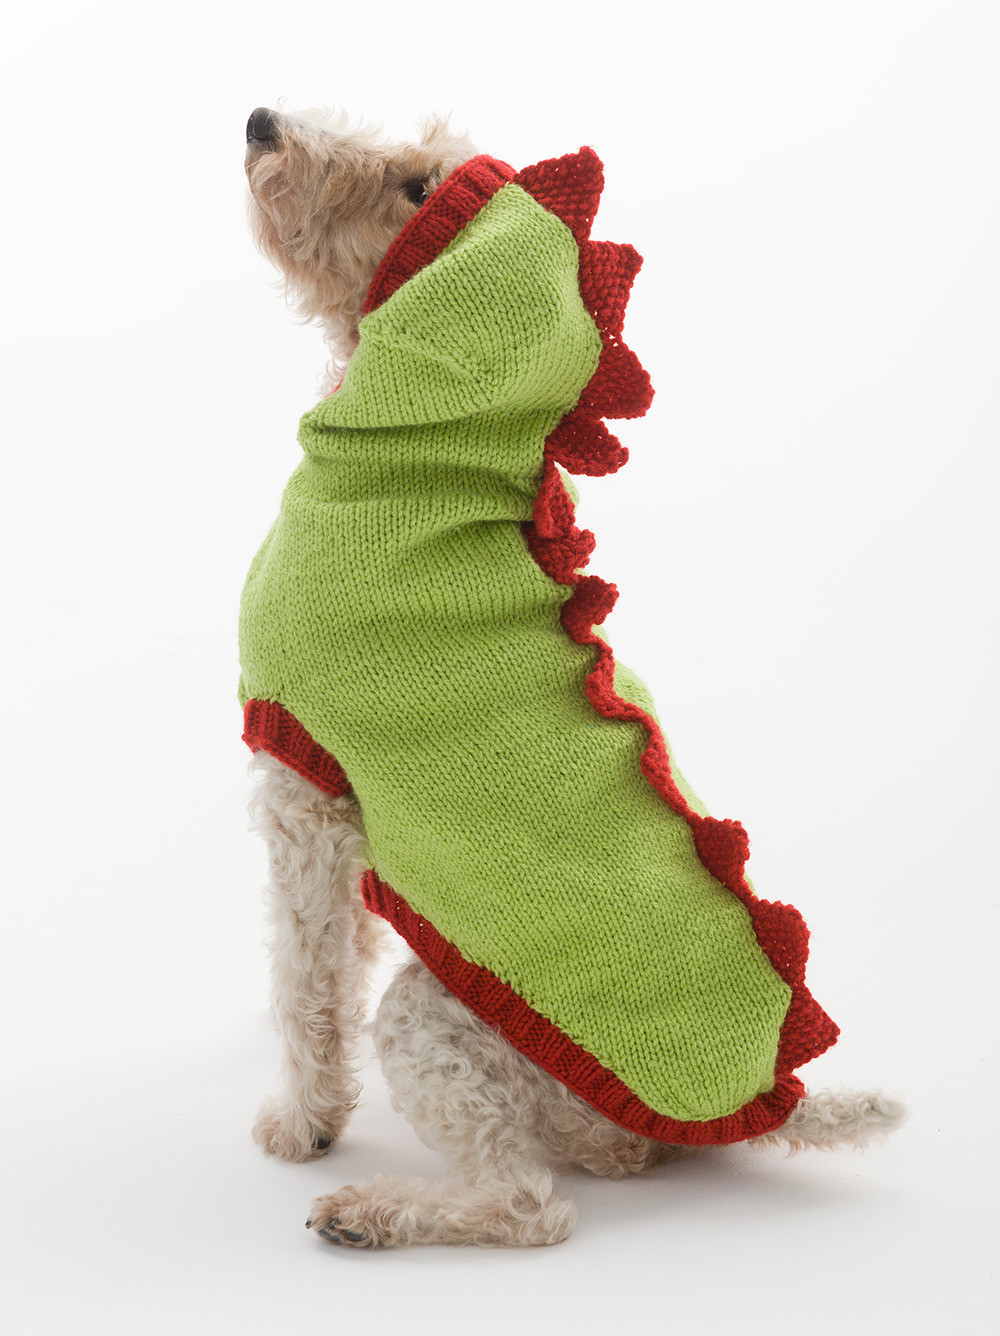 Dog Sweater Patterns Best Of Dragon Slayer Dog Sweater In Lion Brand Wool Ease L Of Unique 41 Photos Dog Sweater Patterns